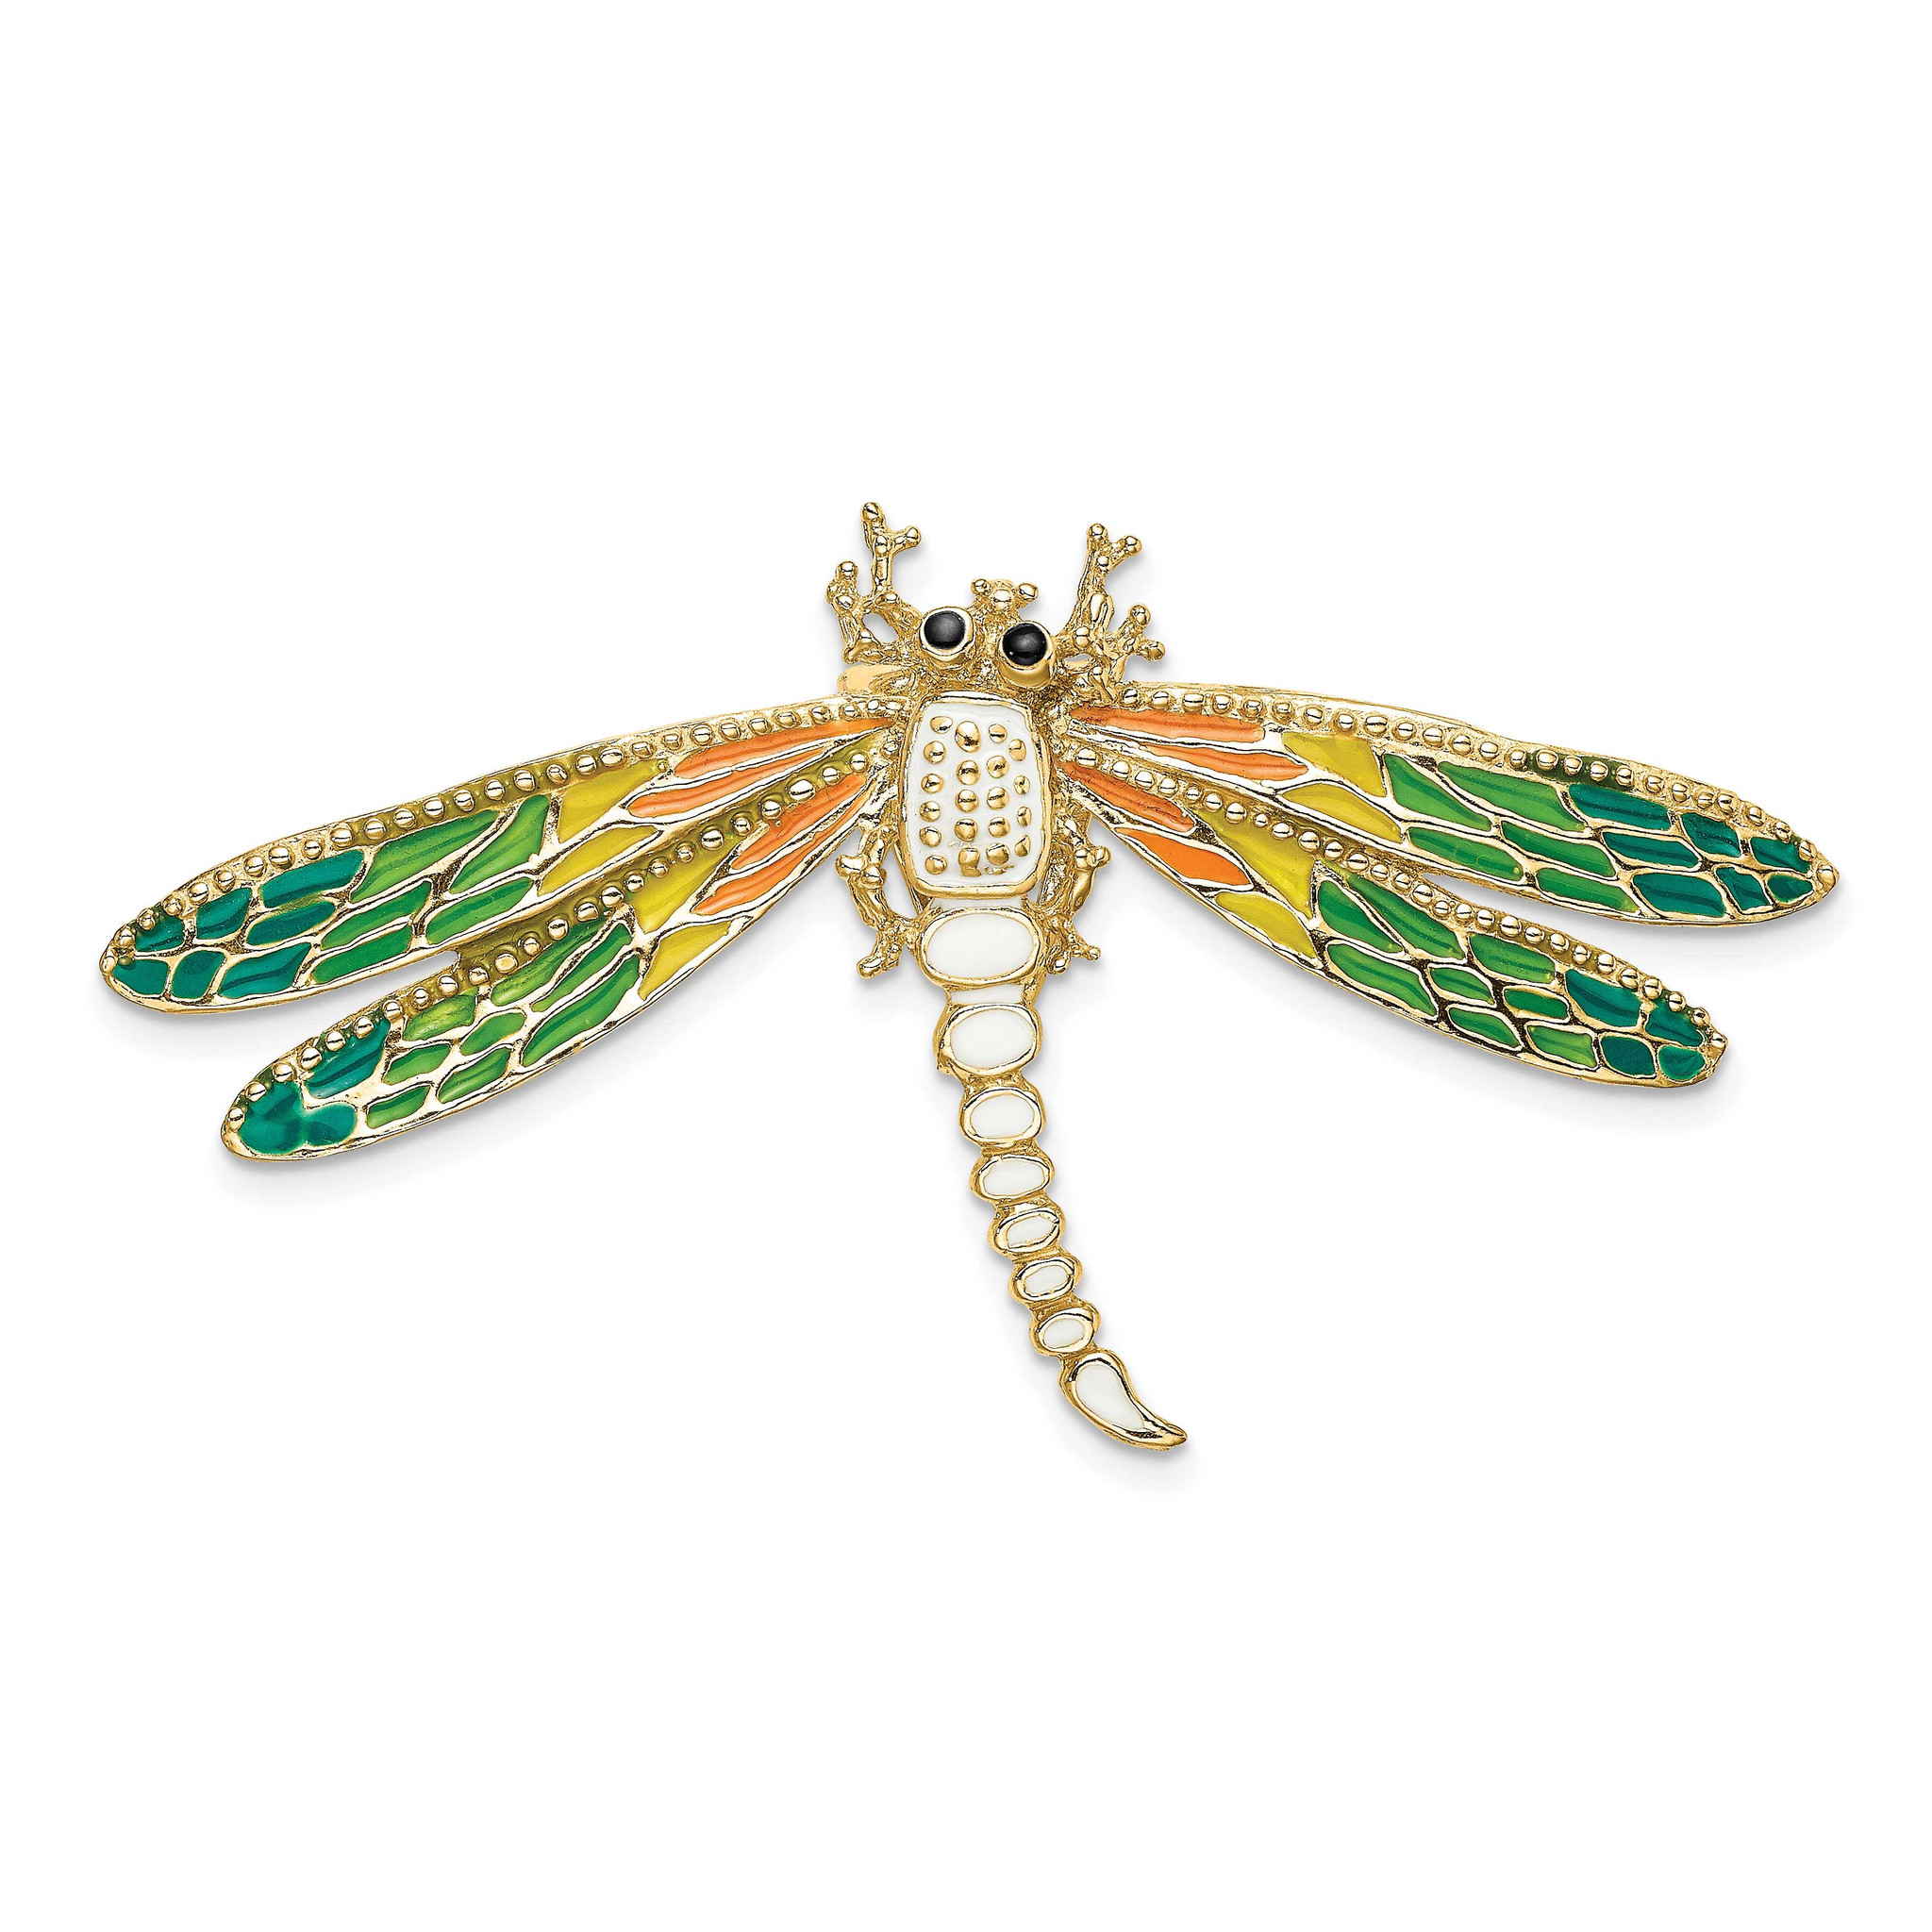 14k Gold Dragonfly Charm With Coloured Stones